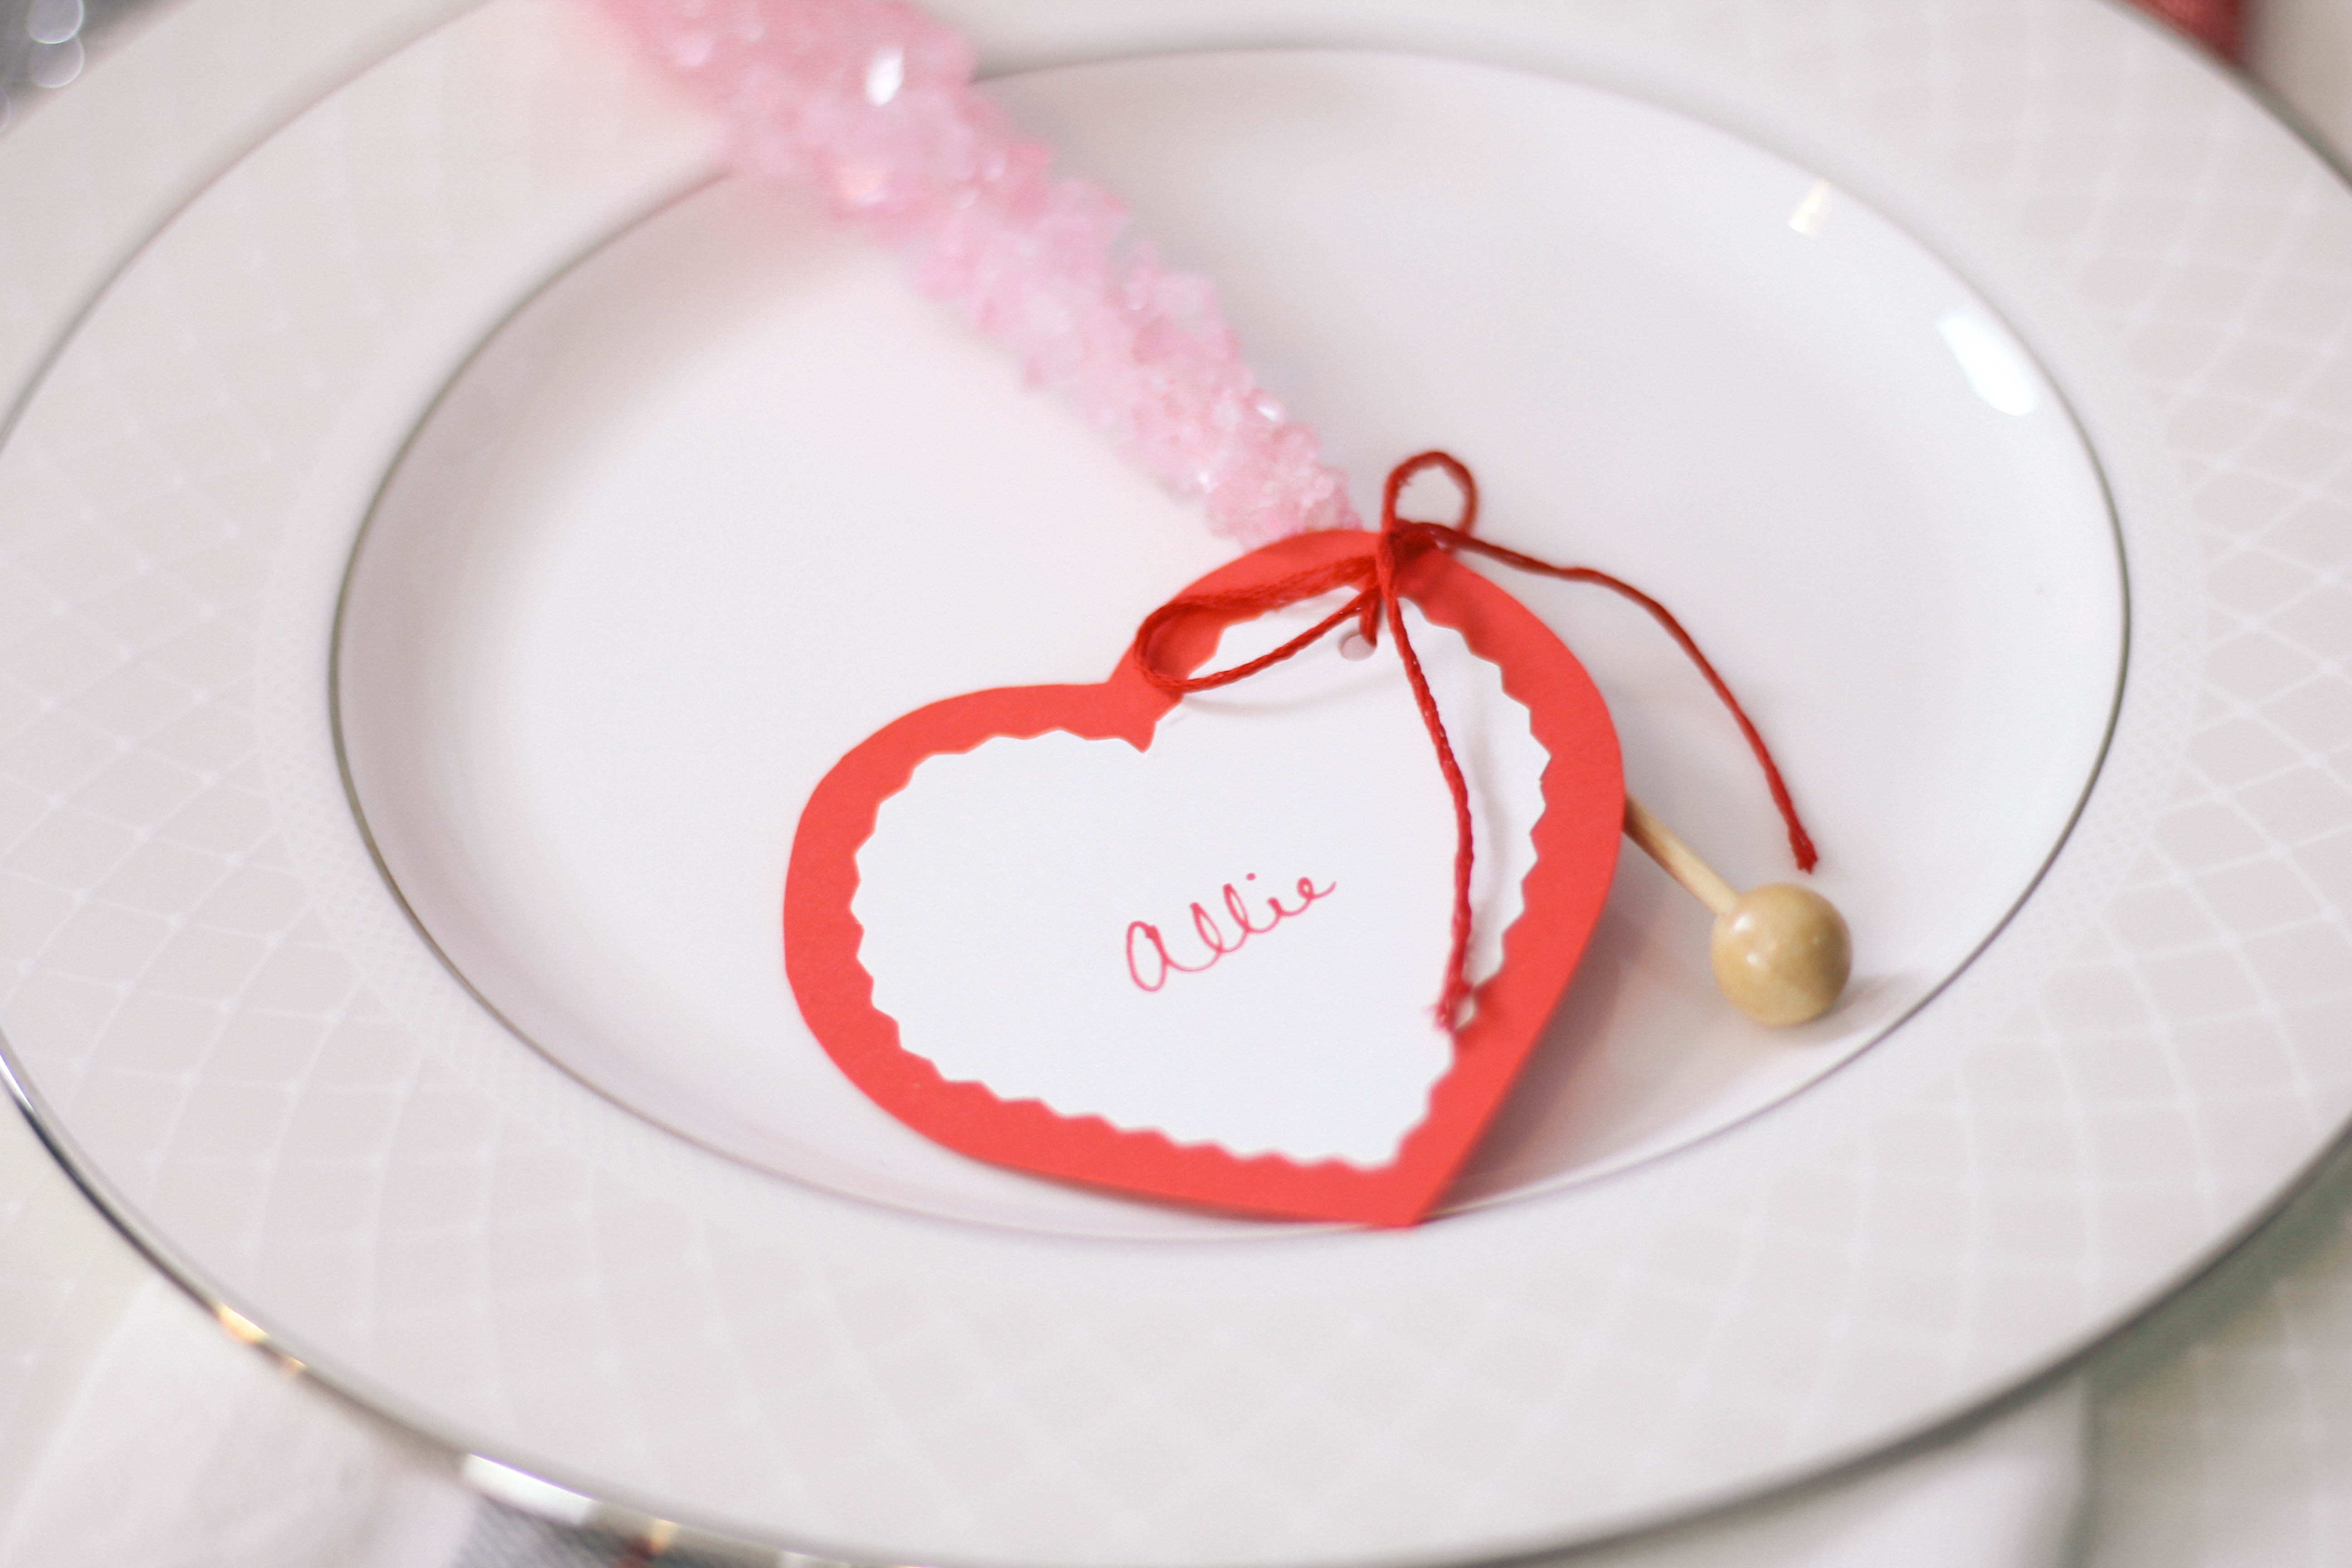 DIY Valentine's Party Place Cards   Peachfully Chic